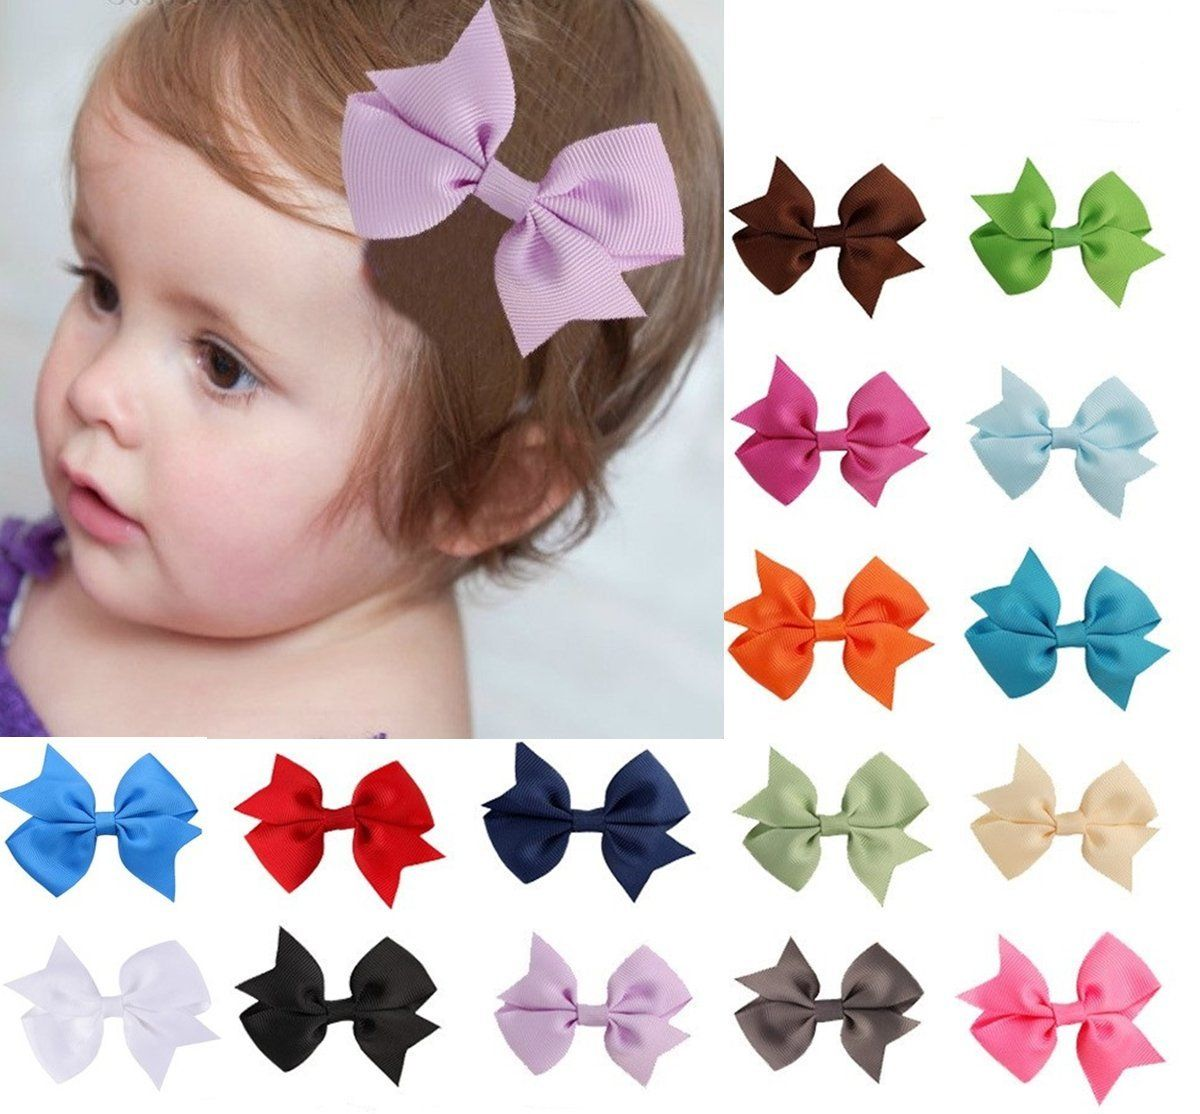 V-noah 16pcs Grosgrain Ribbon Hair Bows Hair Clips Pins for Girls Women Random Color *** Check this awesome product by going to the link at the image.